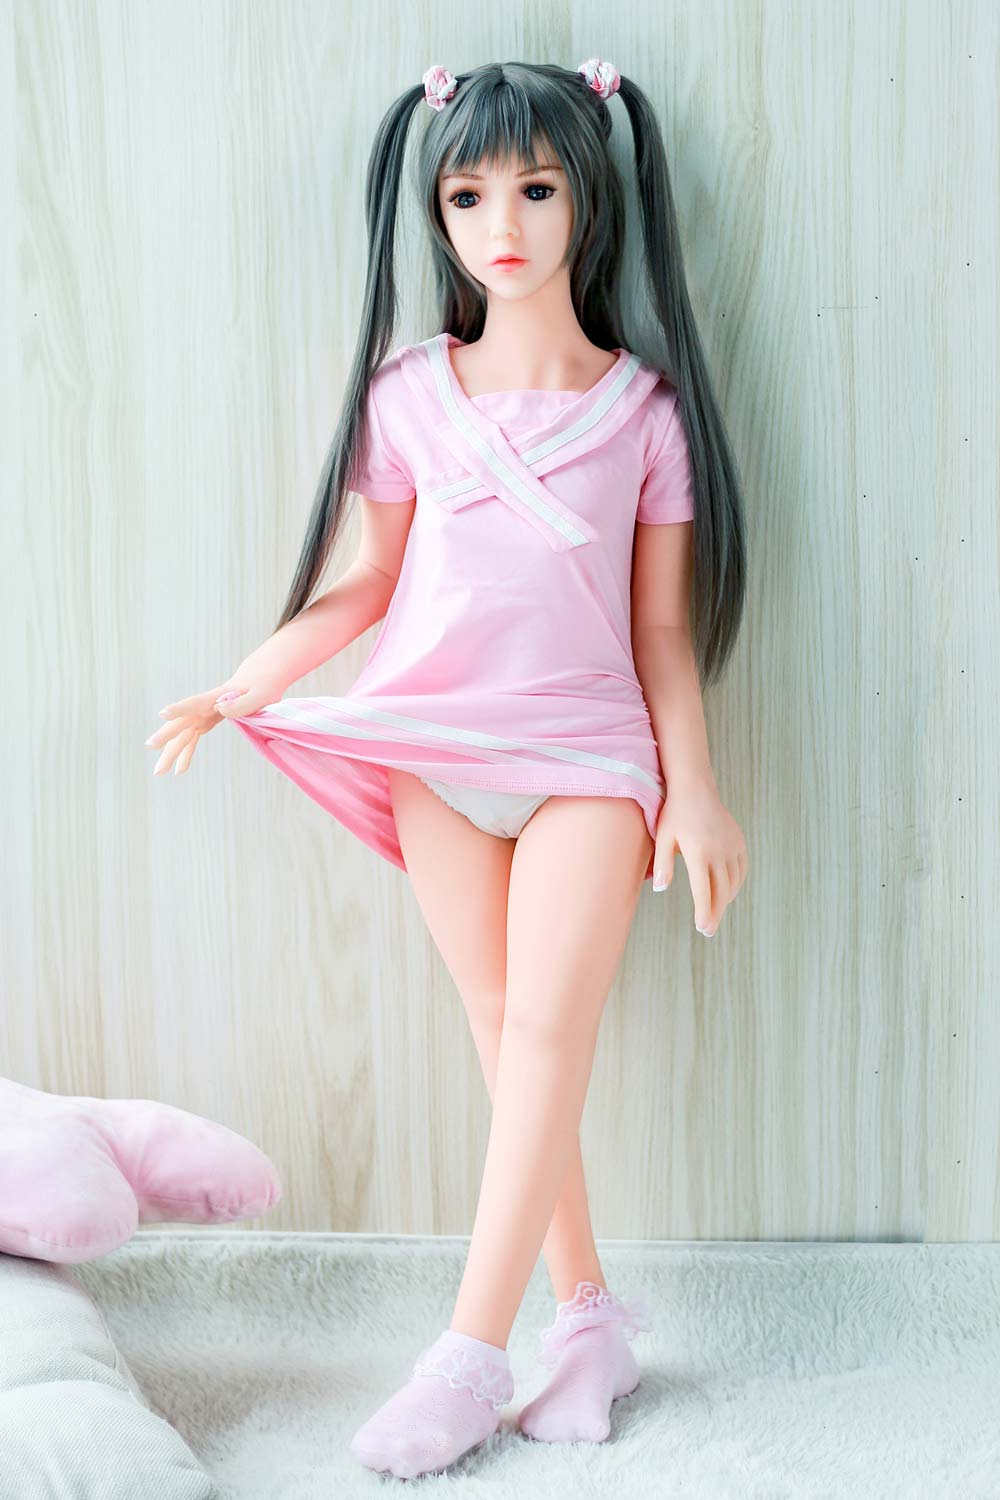 A mini sex doll that lifts a corner of the clothes and reveals panties